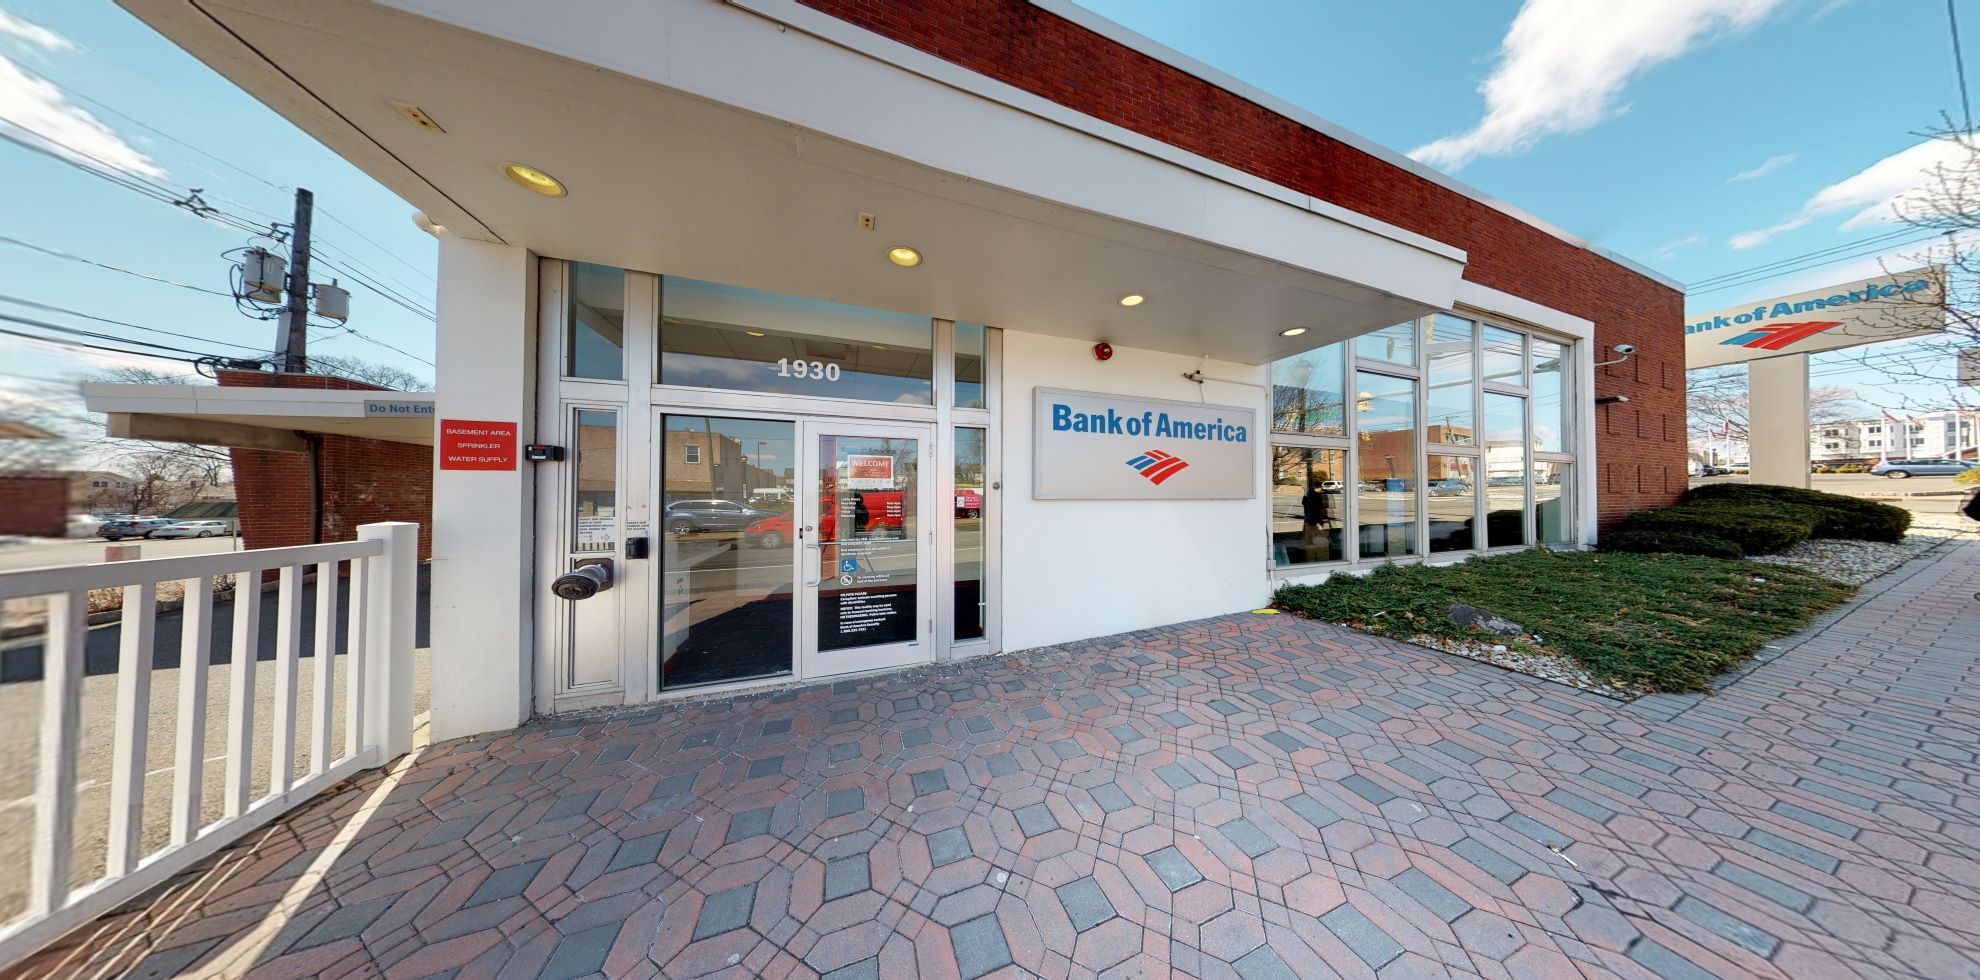 Bank of America financial center with drive-thru ATM | 1930 Morris Ave, Union, NJ 07083